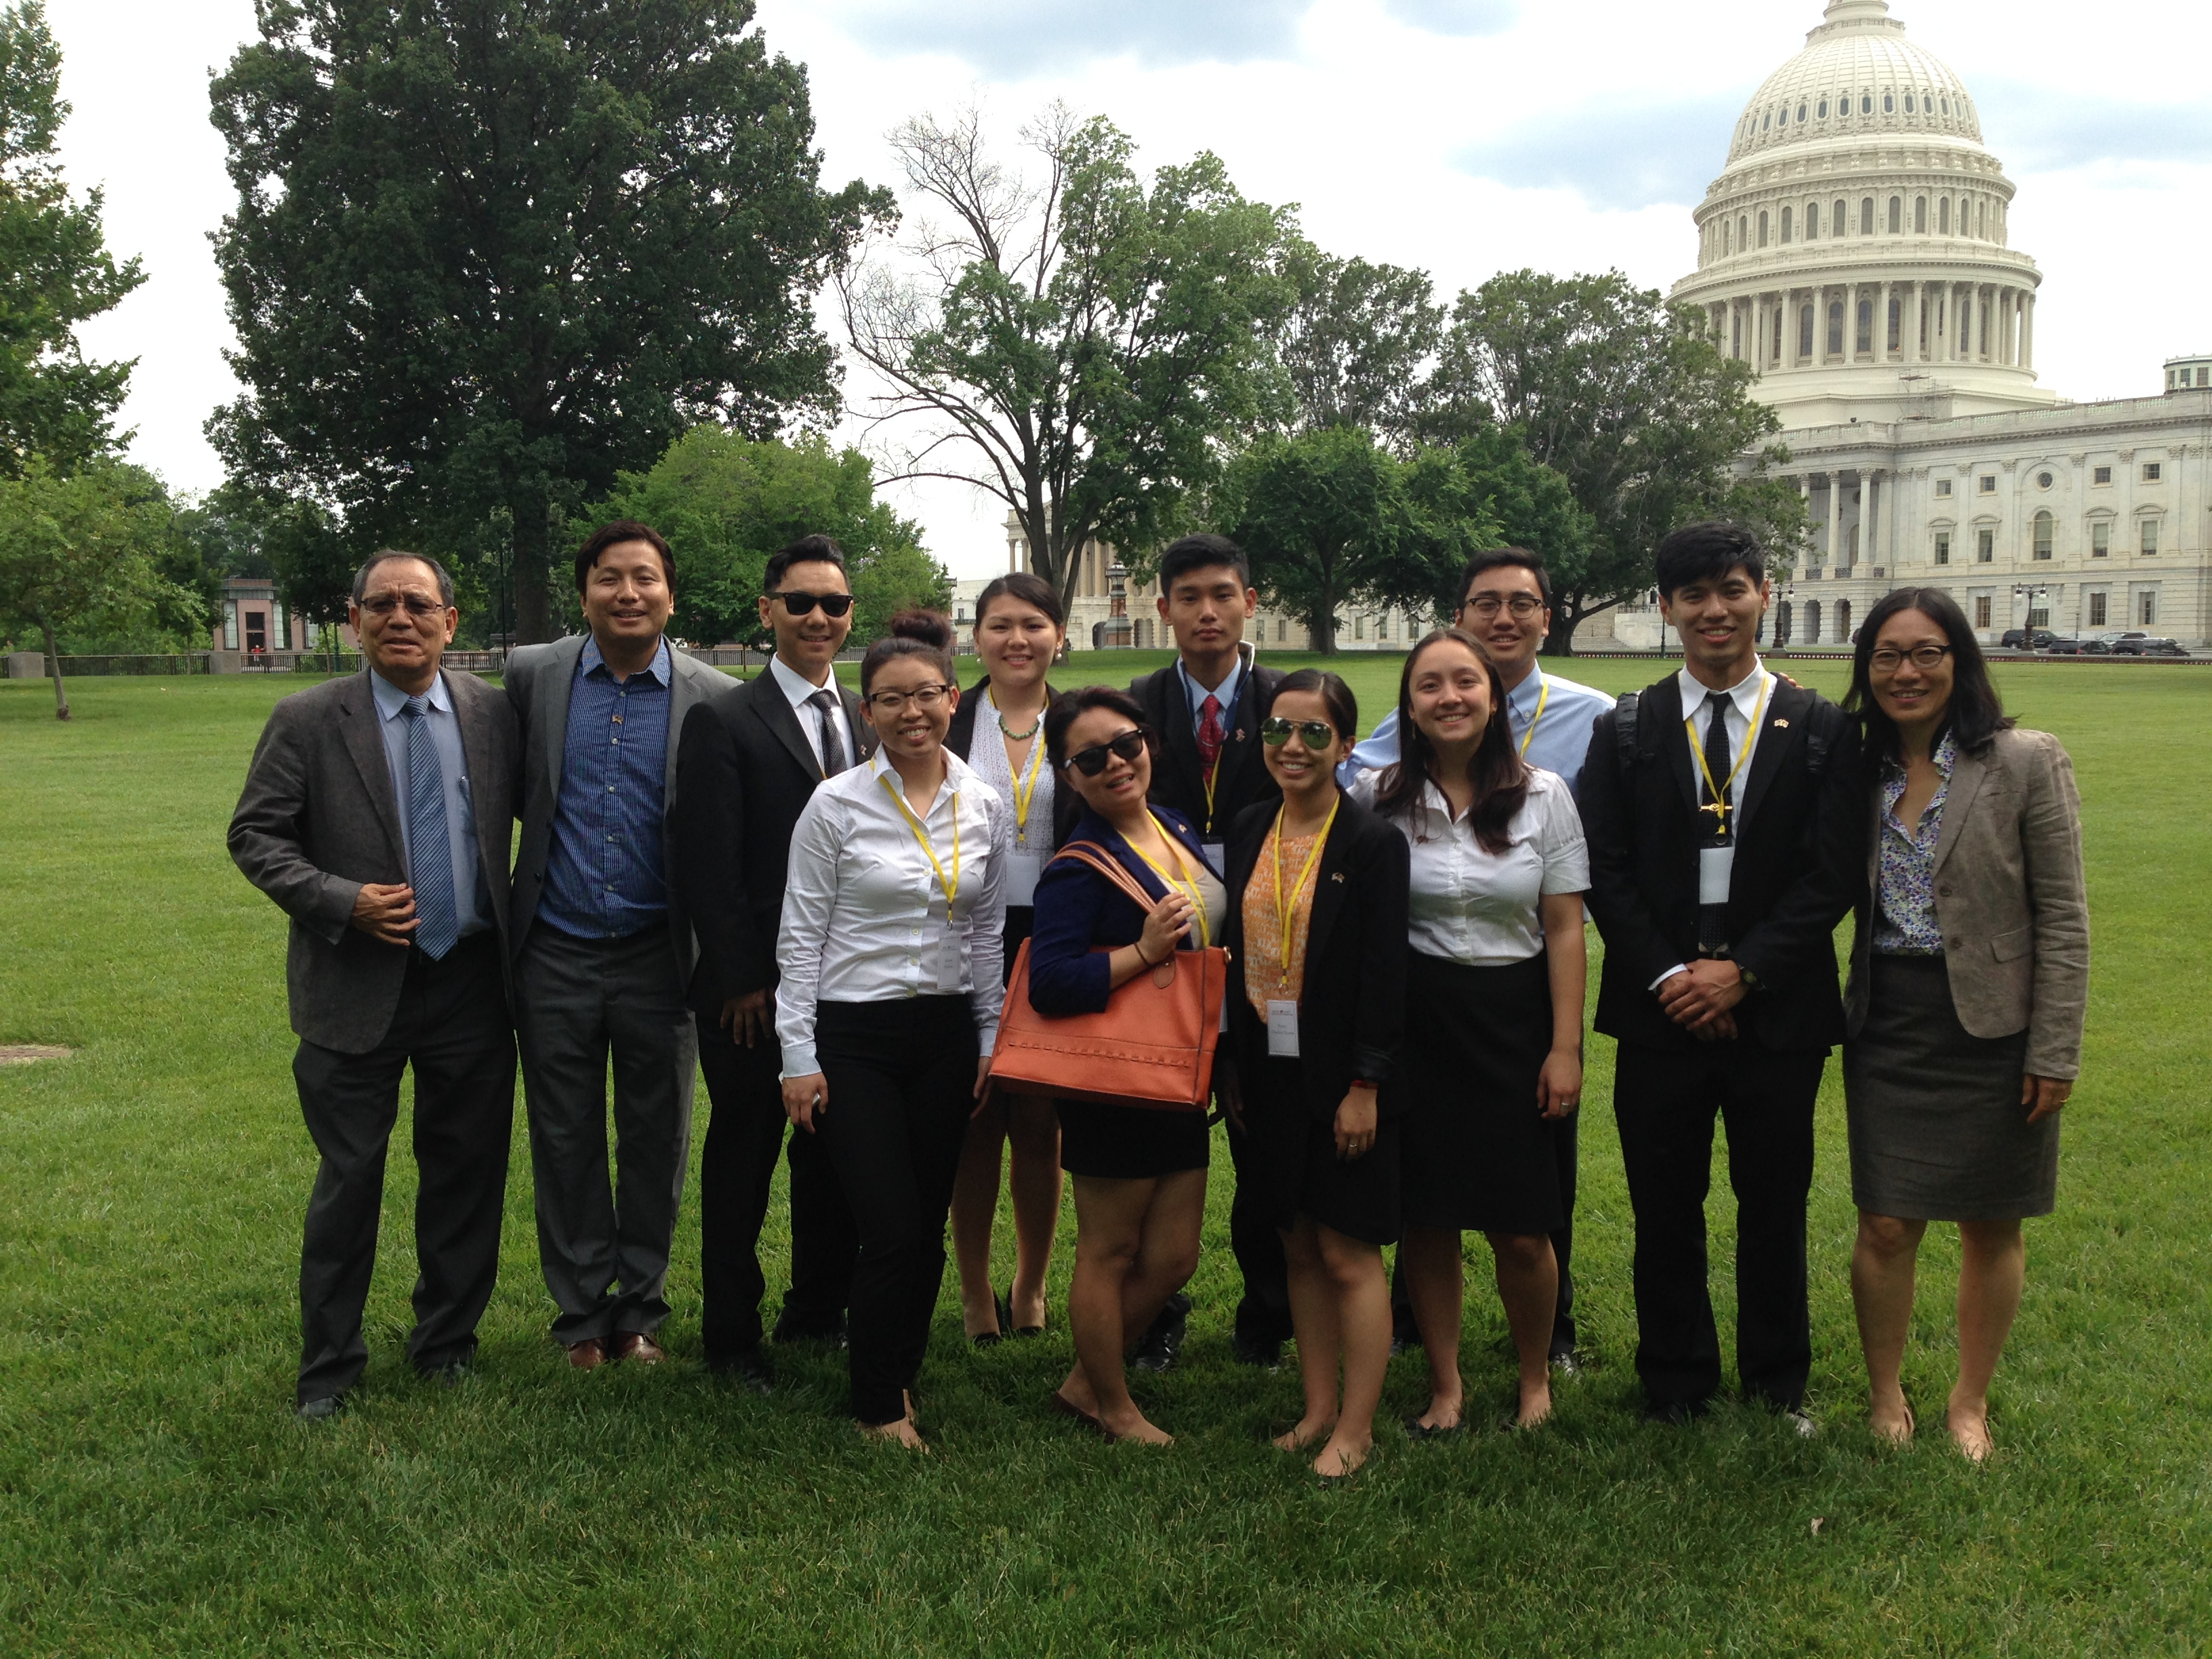 TYLP at the Capitol